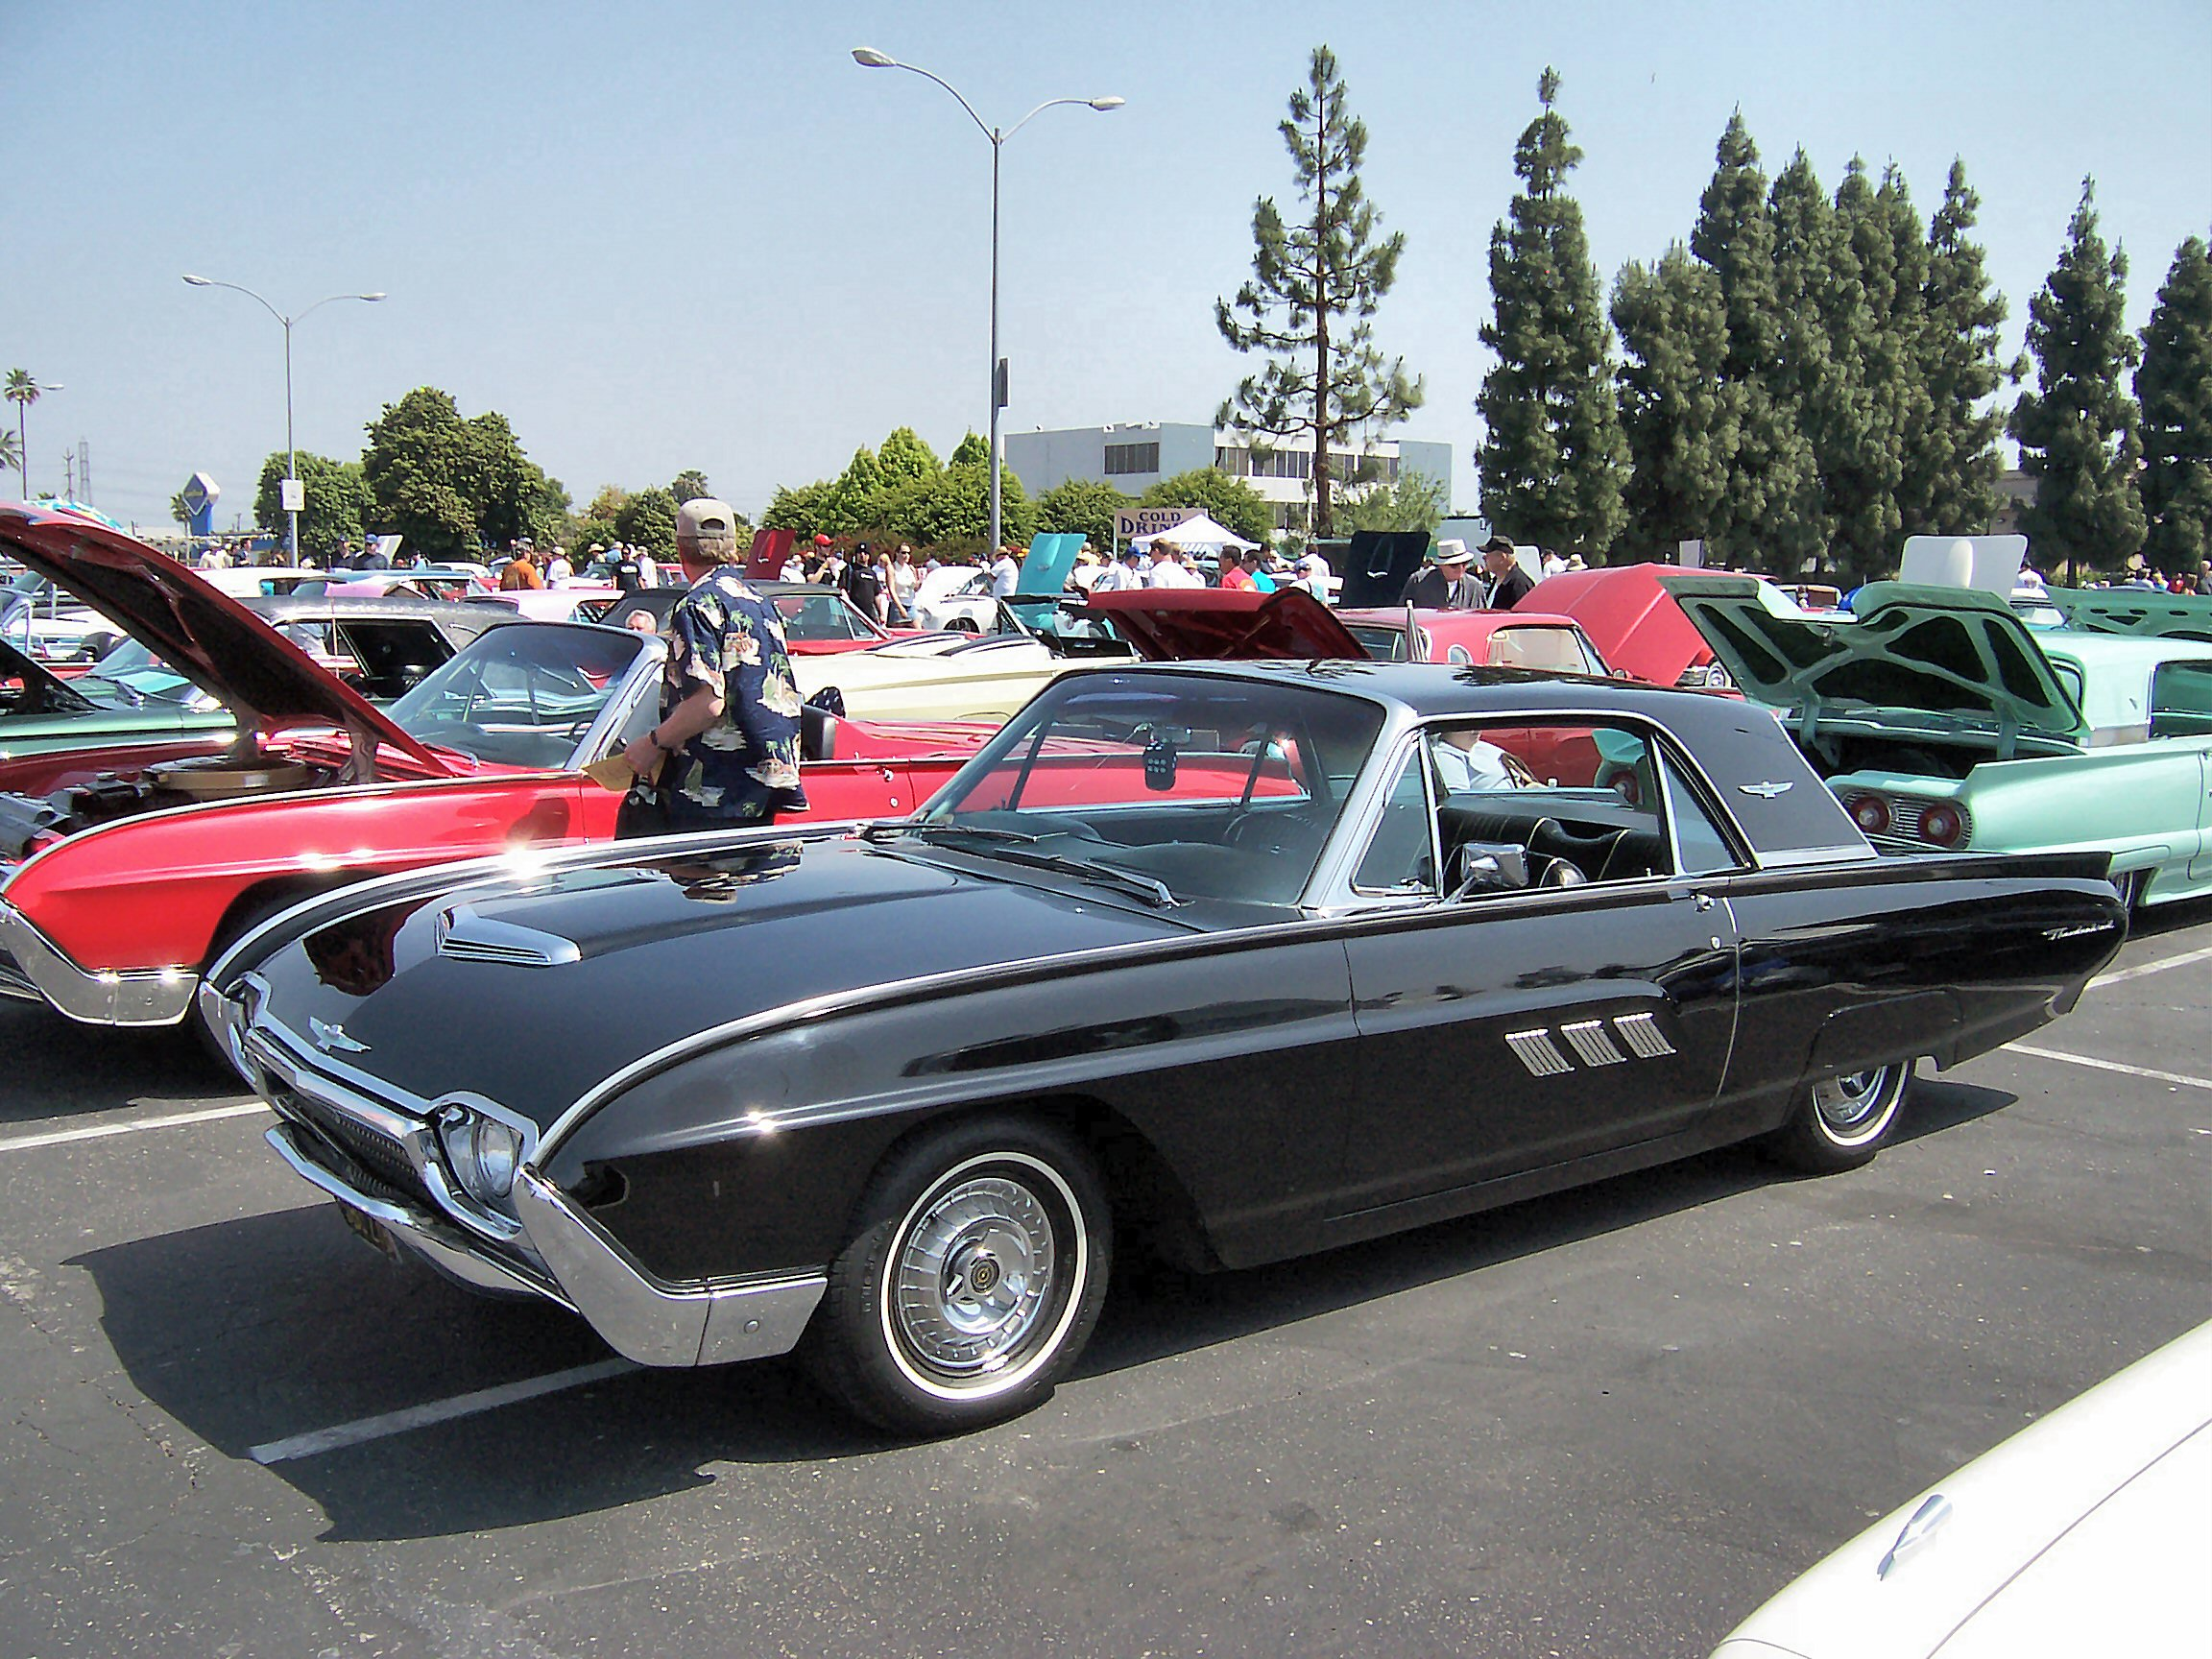 ford thunderbird images #5